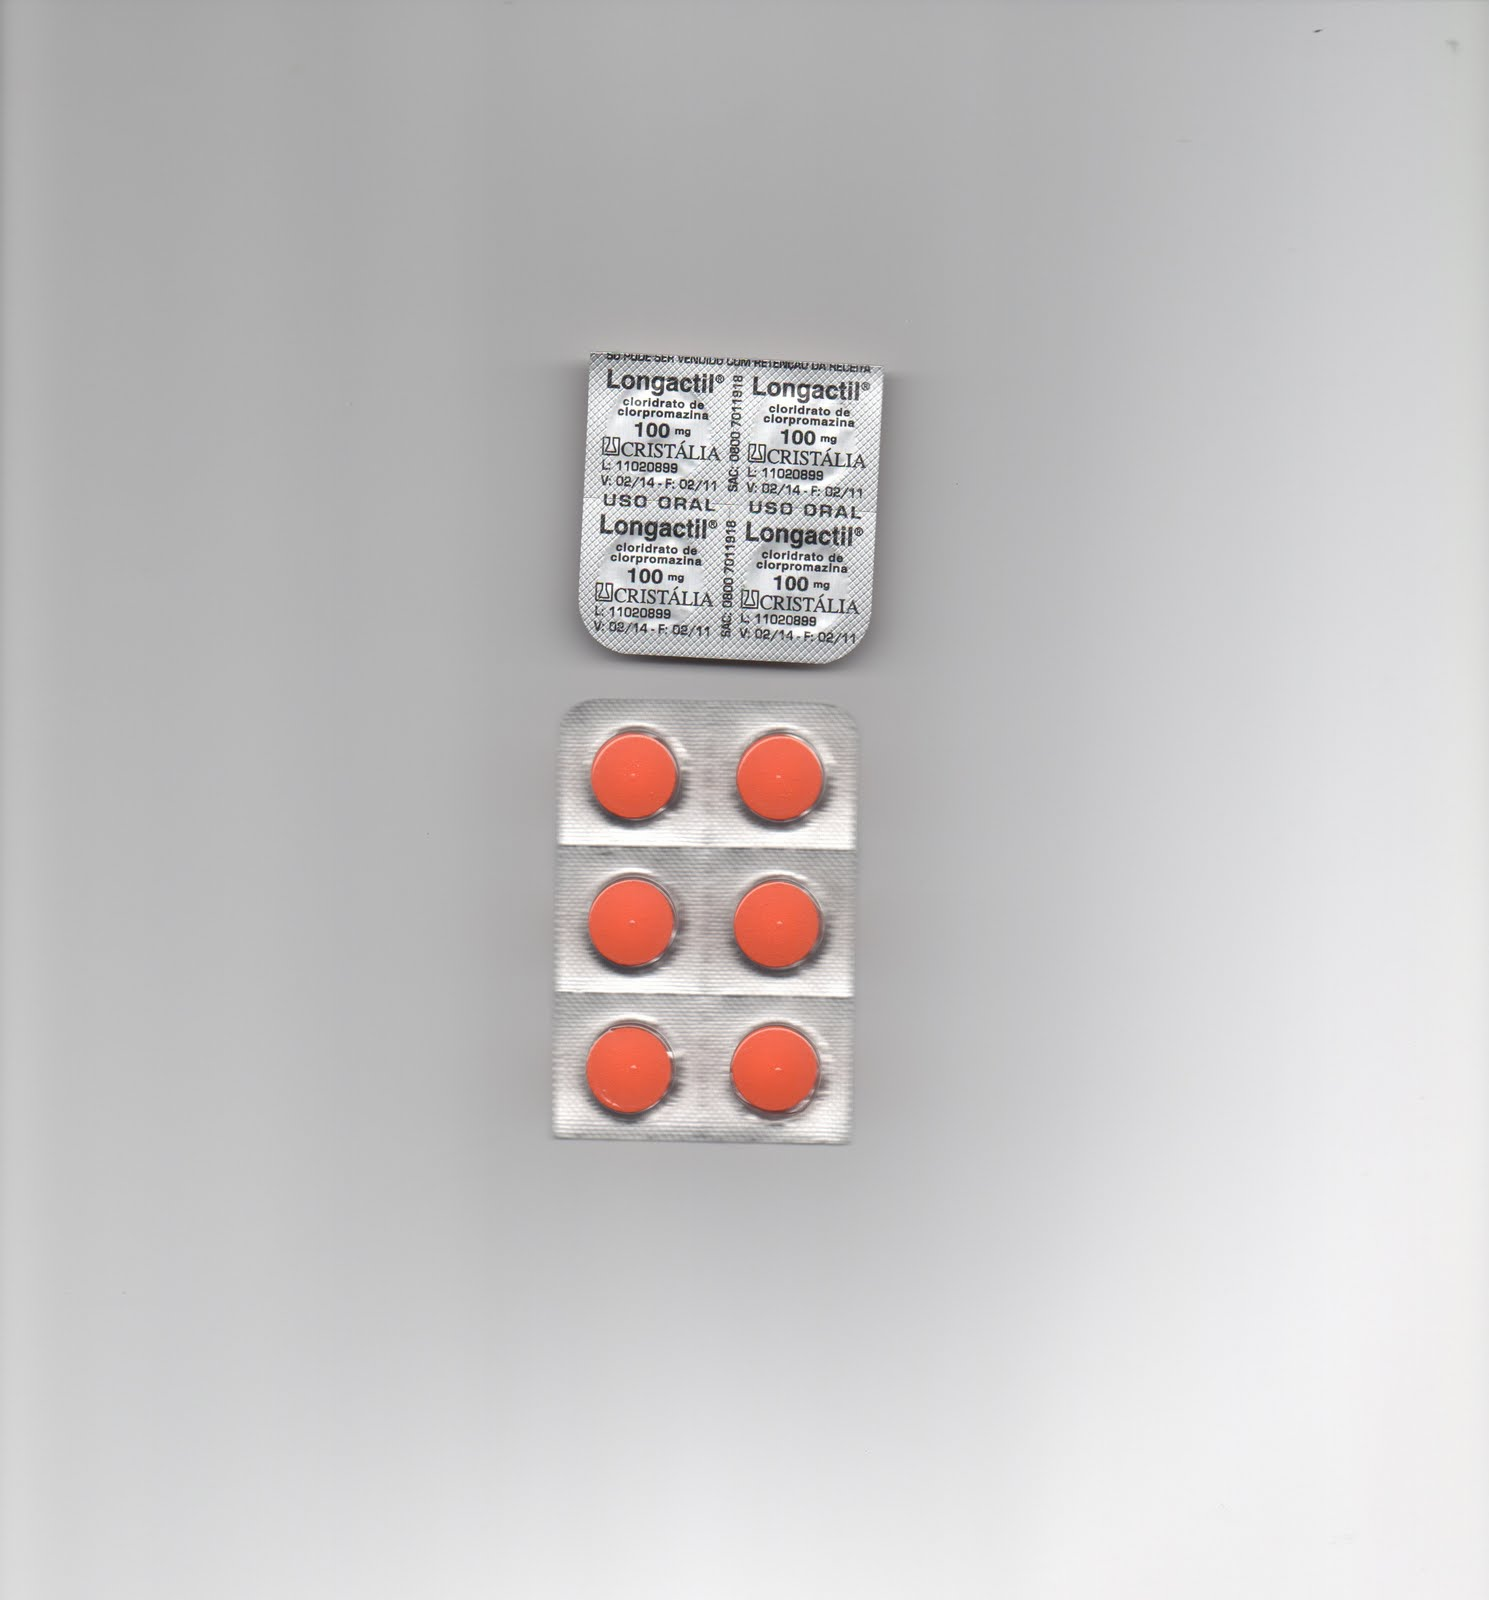 azicip 250 dosage